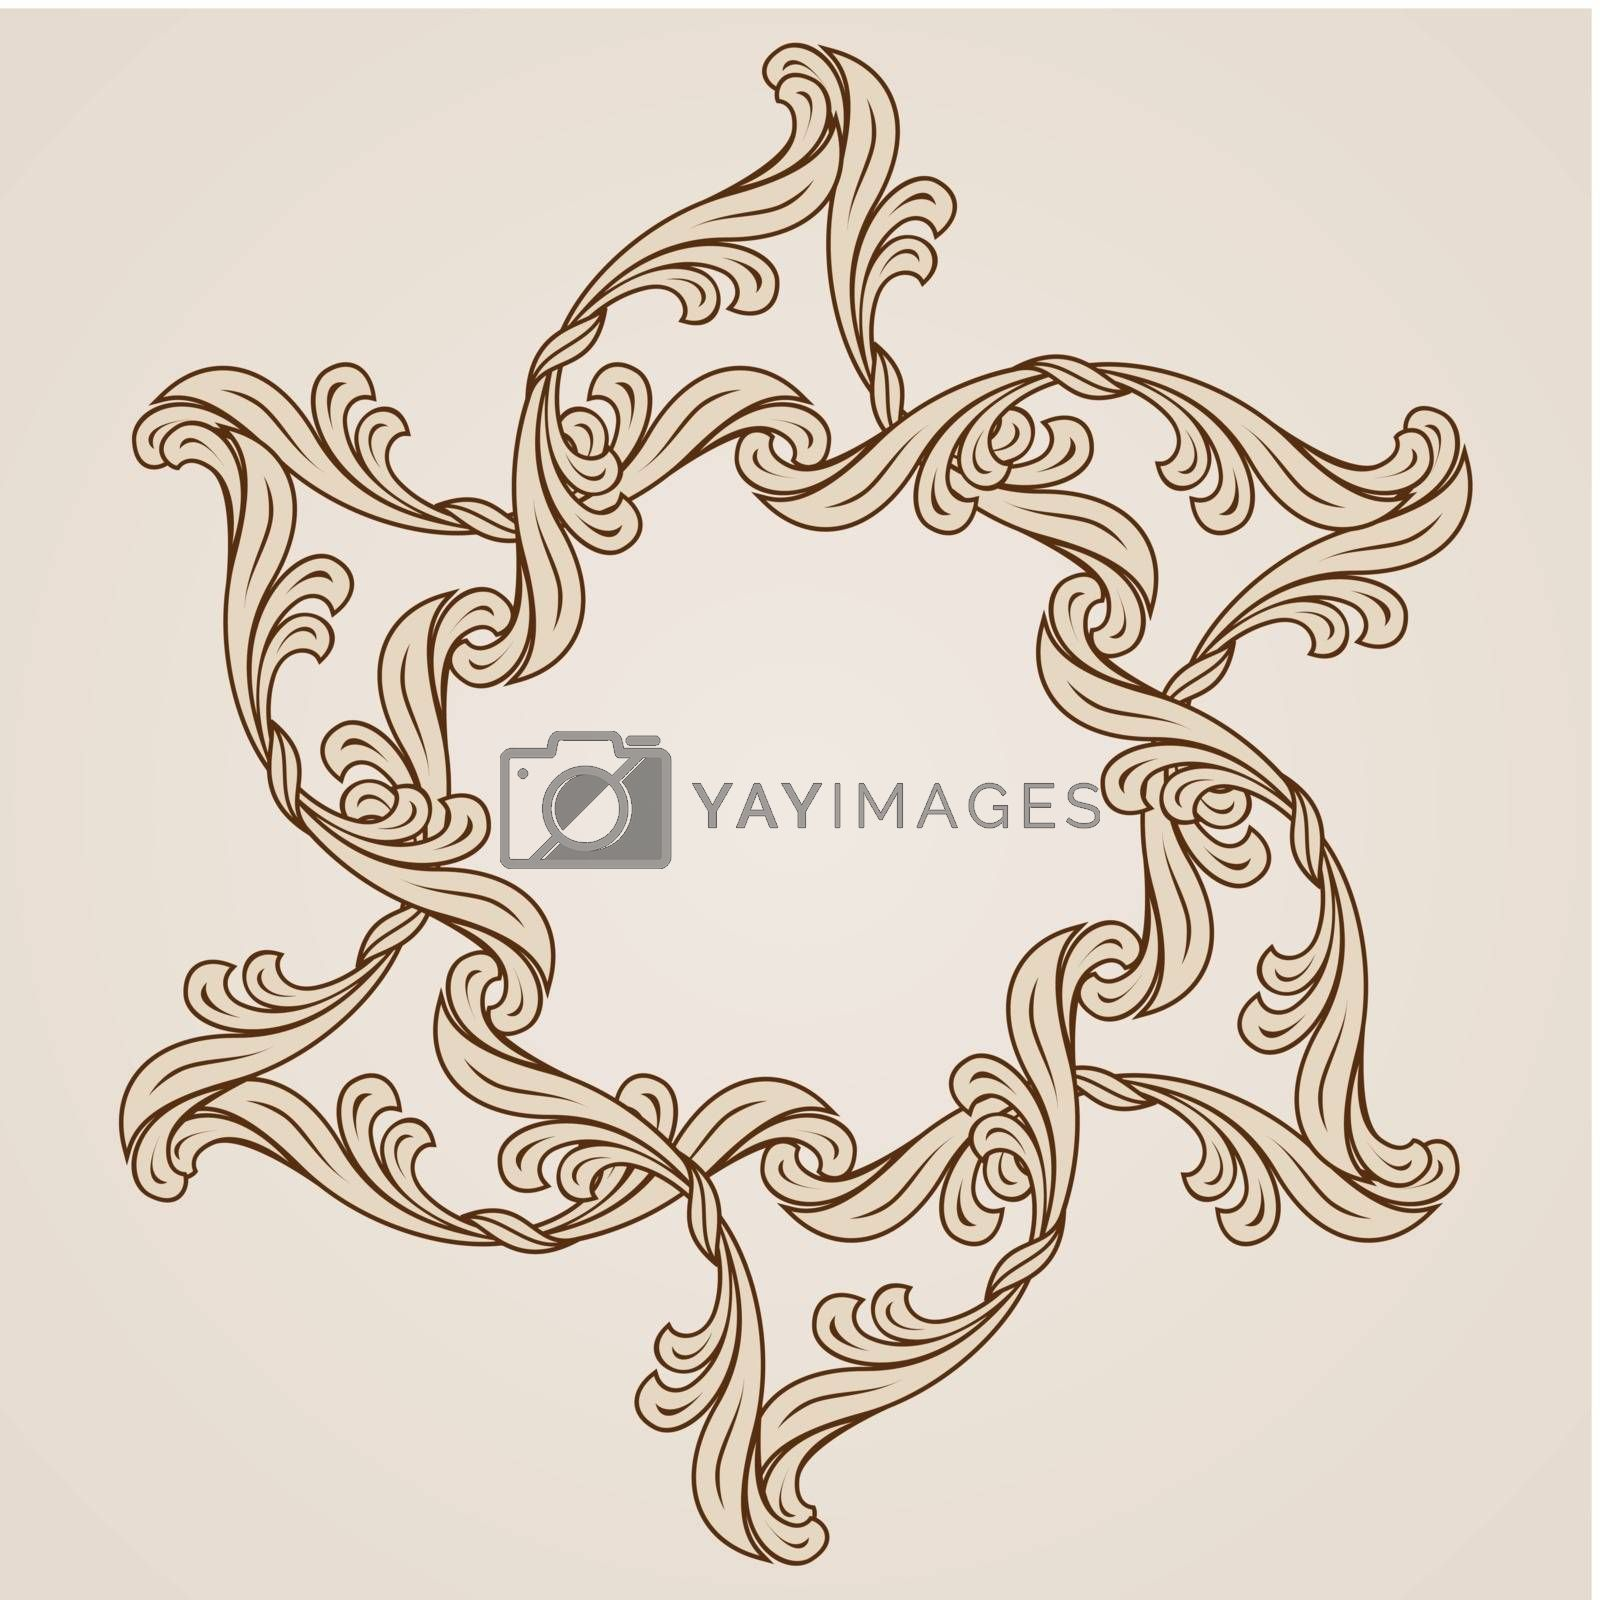 Royalty free image of Floral pattern by dvarg